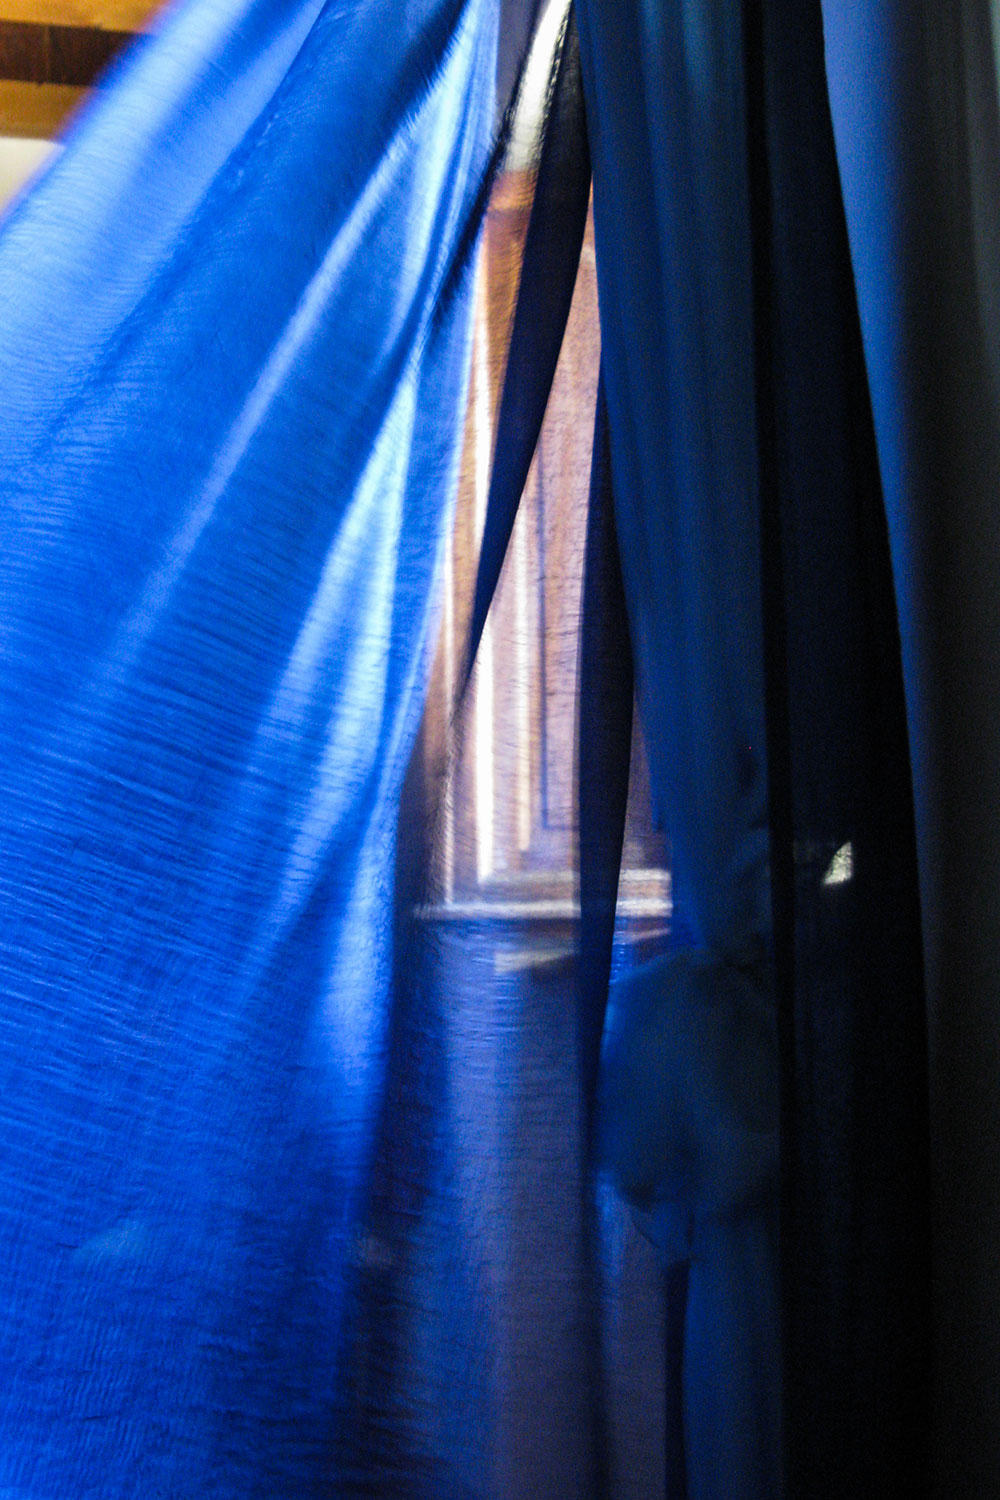 Blue Flowing Curtain